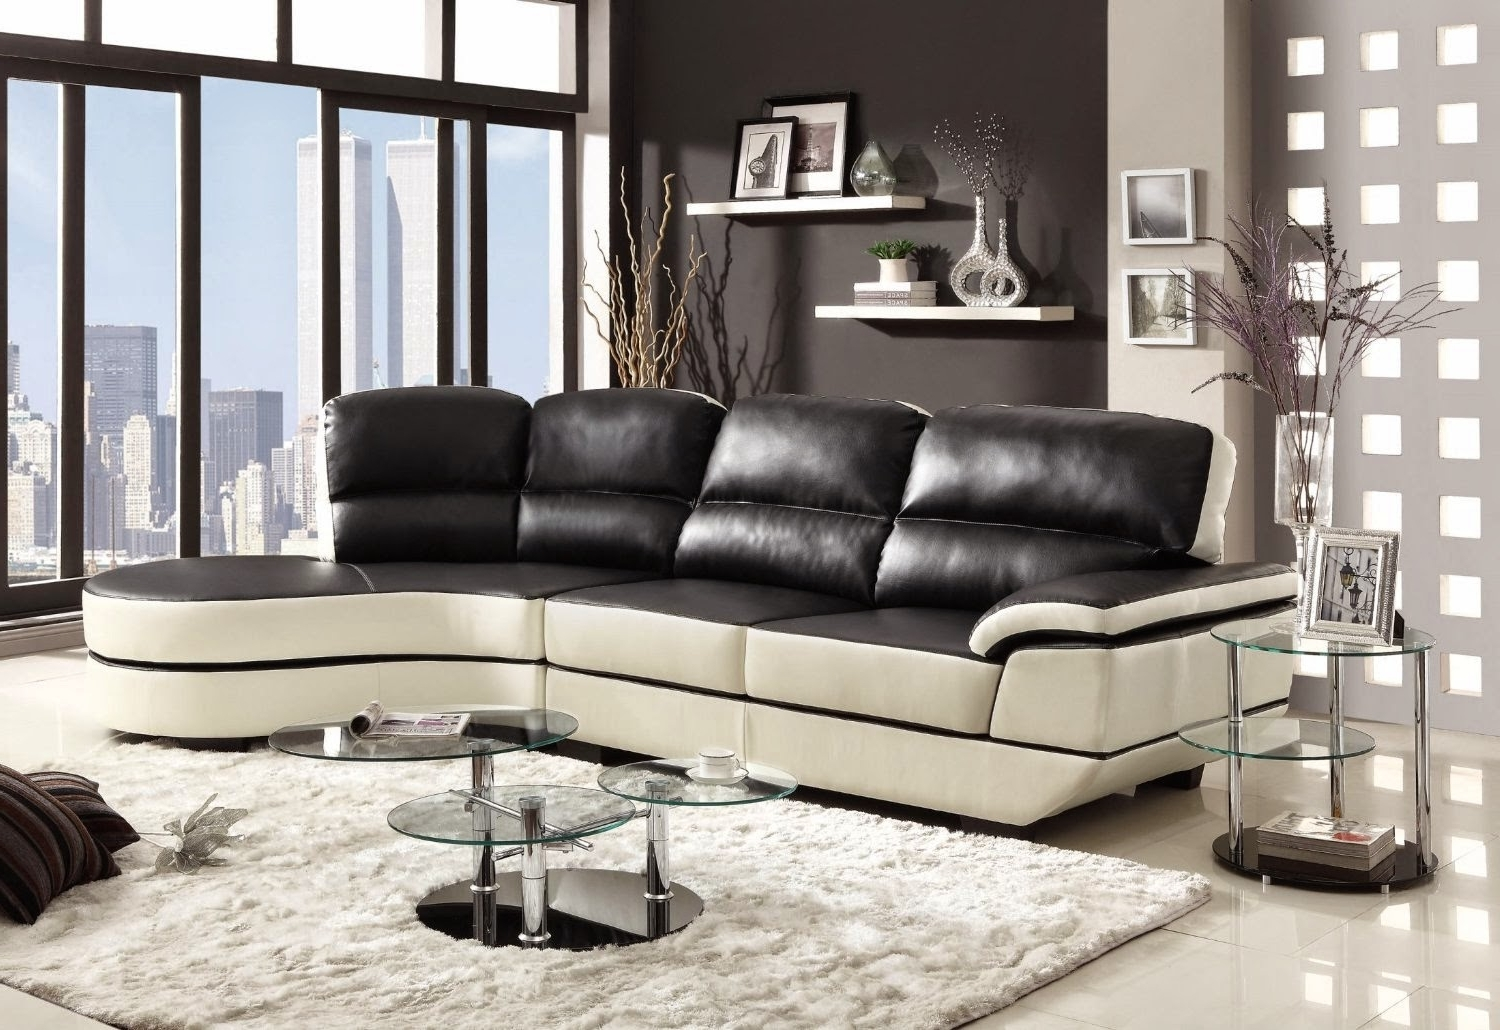 Furniture : Sectional Sofa Ebay Corner Couch 6 Seater 4 Recliner Regarding Latest 100X80 Sectional Sofas (View 9 of 15)